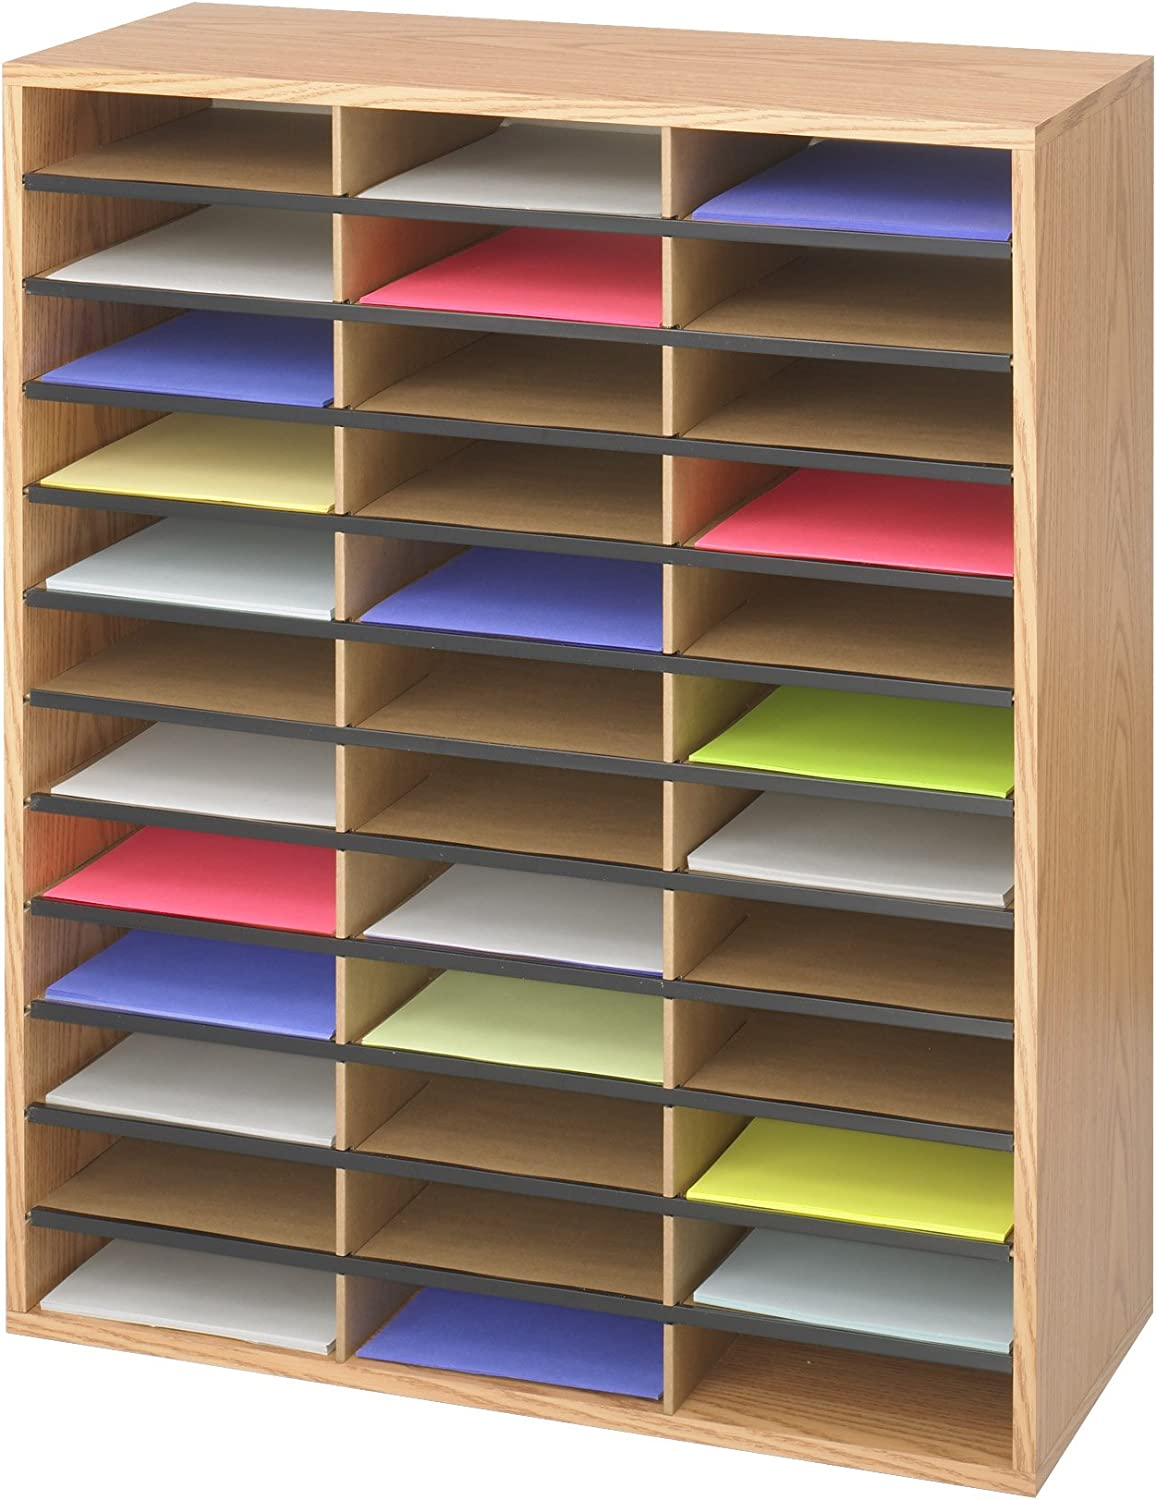 Safco Products Wood/Corrugated Literature Organizer, 36 Compartment 9403, Economical Organization, Letter-Size Compartments : Mail Box Shelves : Office Products